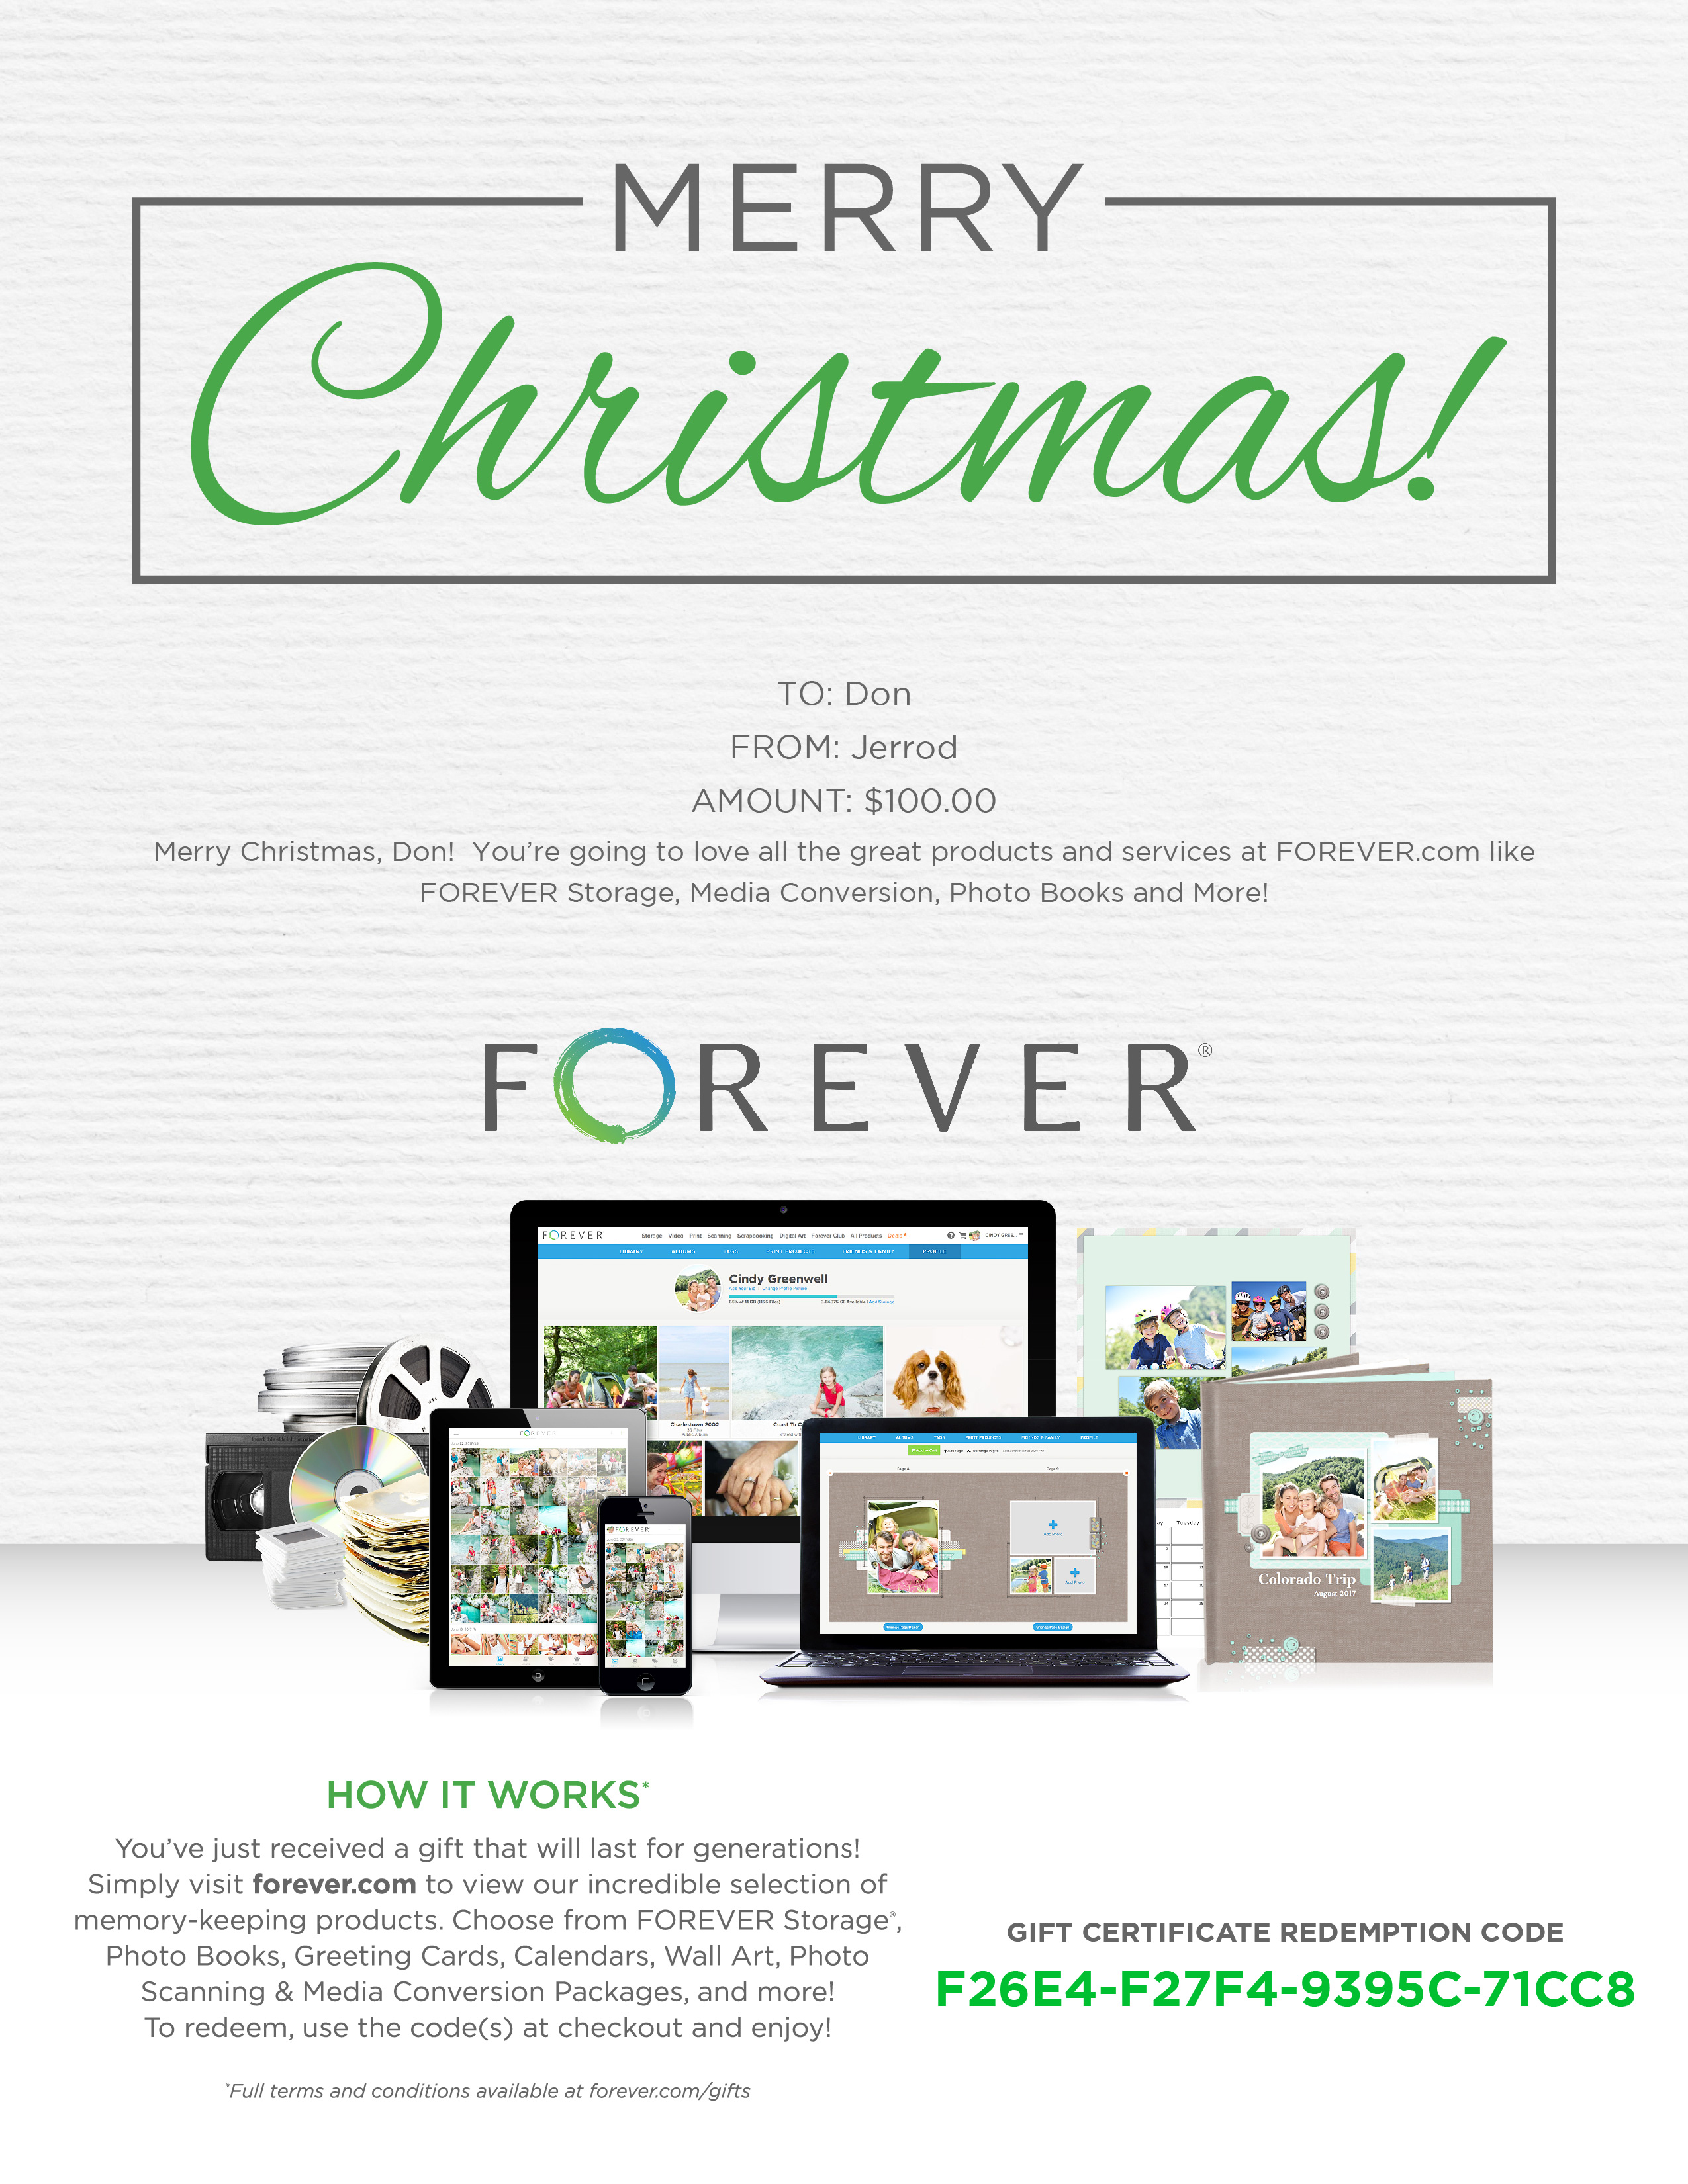 FOREVER Gift Certificate - Merry Christmas